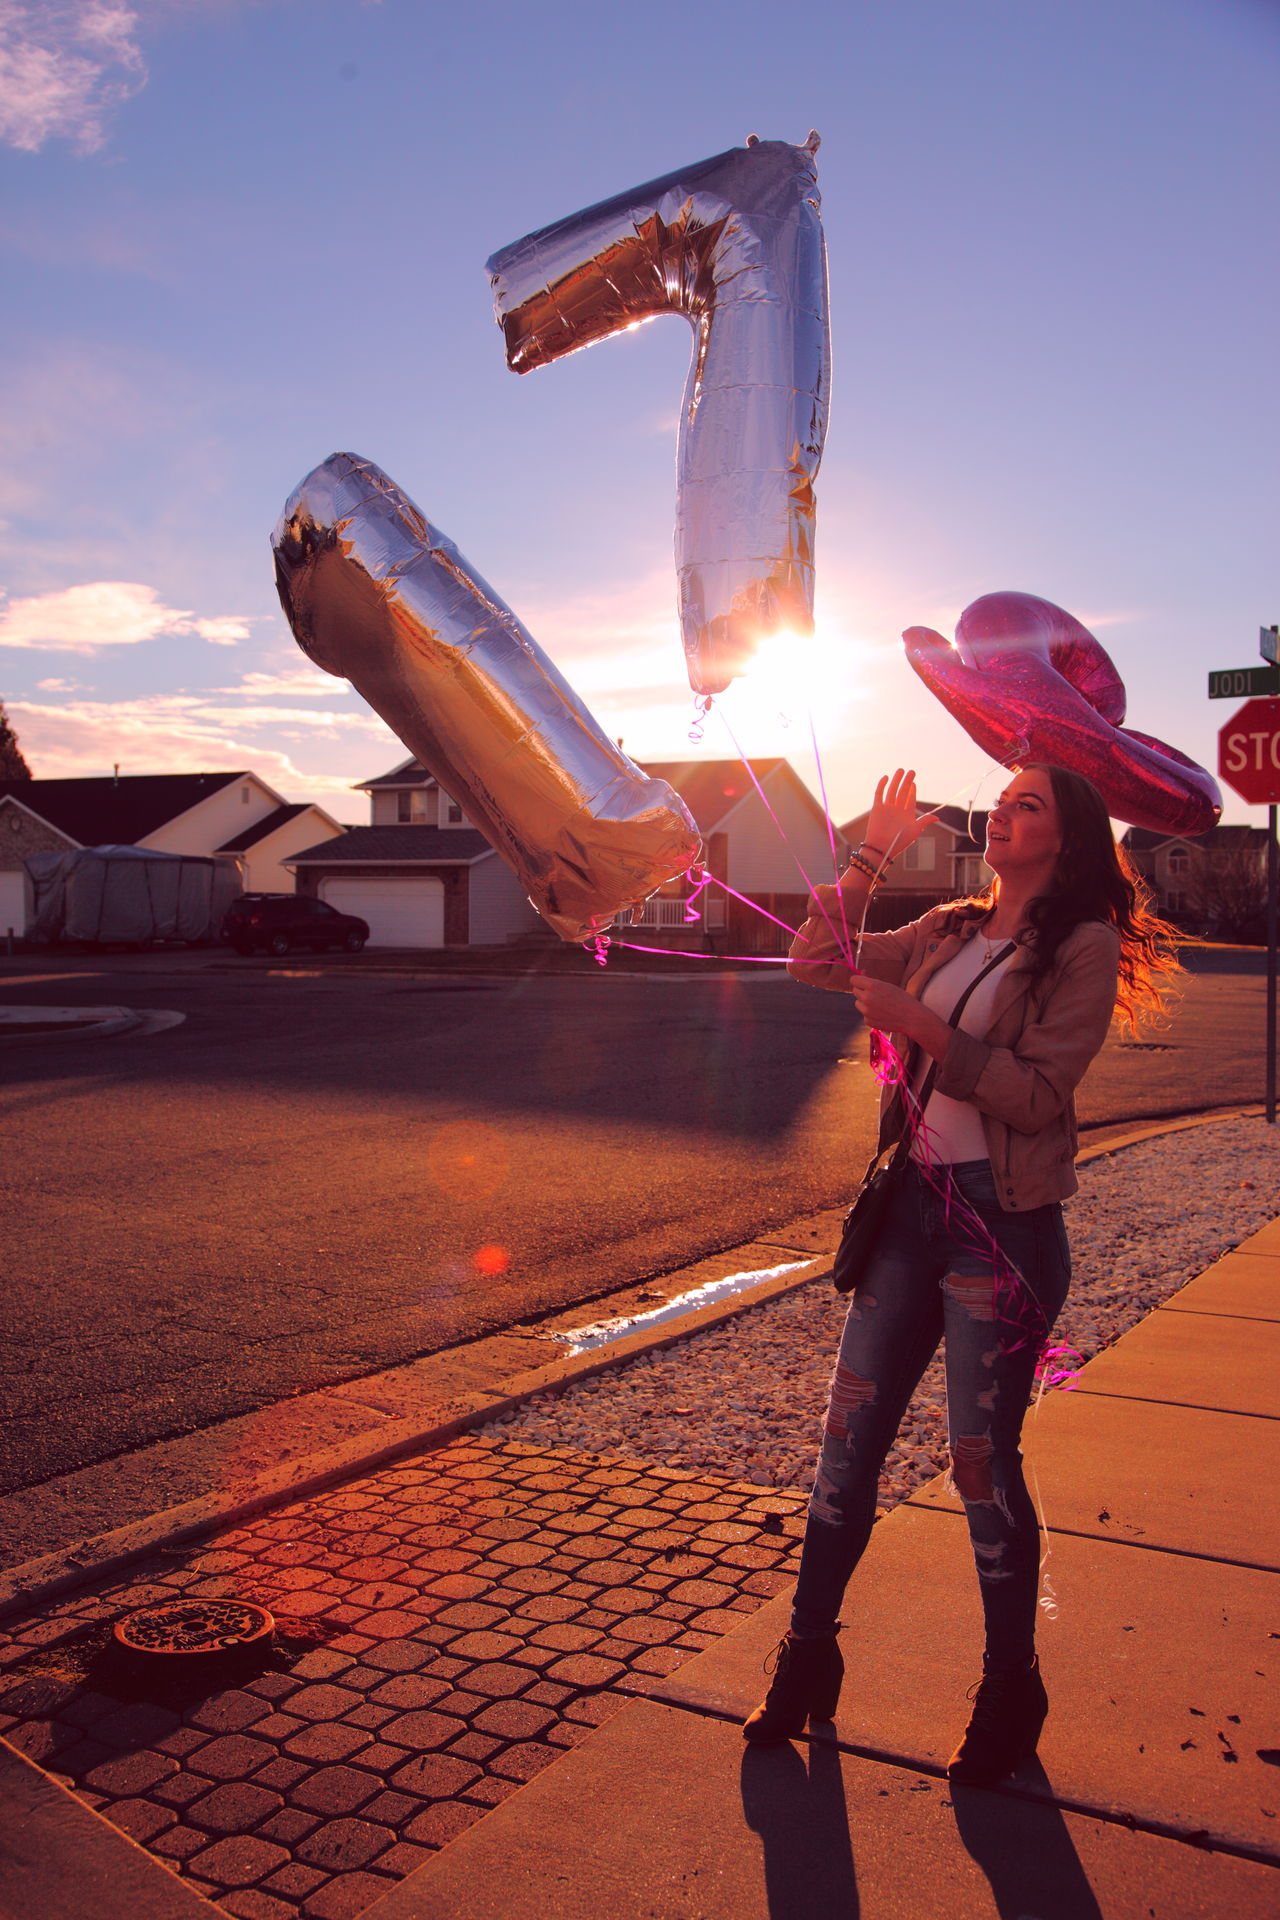 Happy 17th birthday! 17 Backlight Balloons Birthday Family Fun Girl Girls Happy Love One Person Outdoors Party People Portrait Seventeen Silhouette Sky Standing Sunset Teen Teenager Young Adult Women Around The World